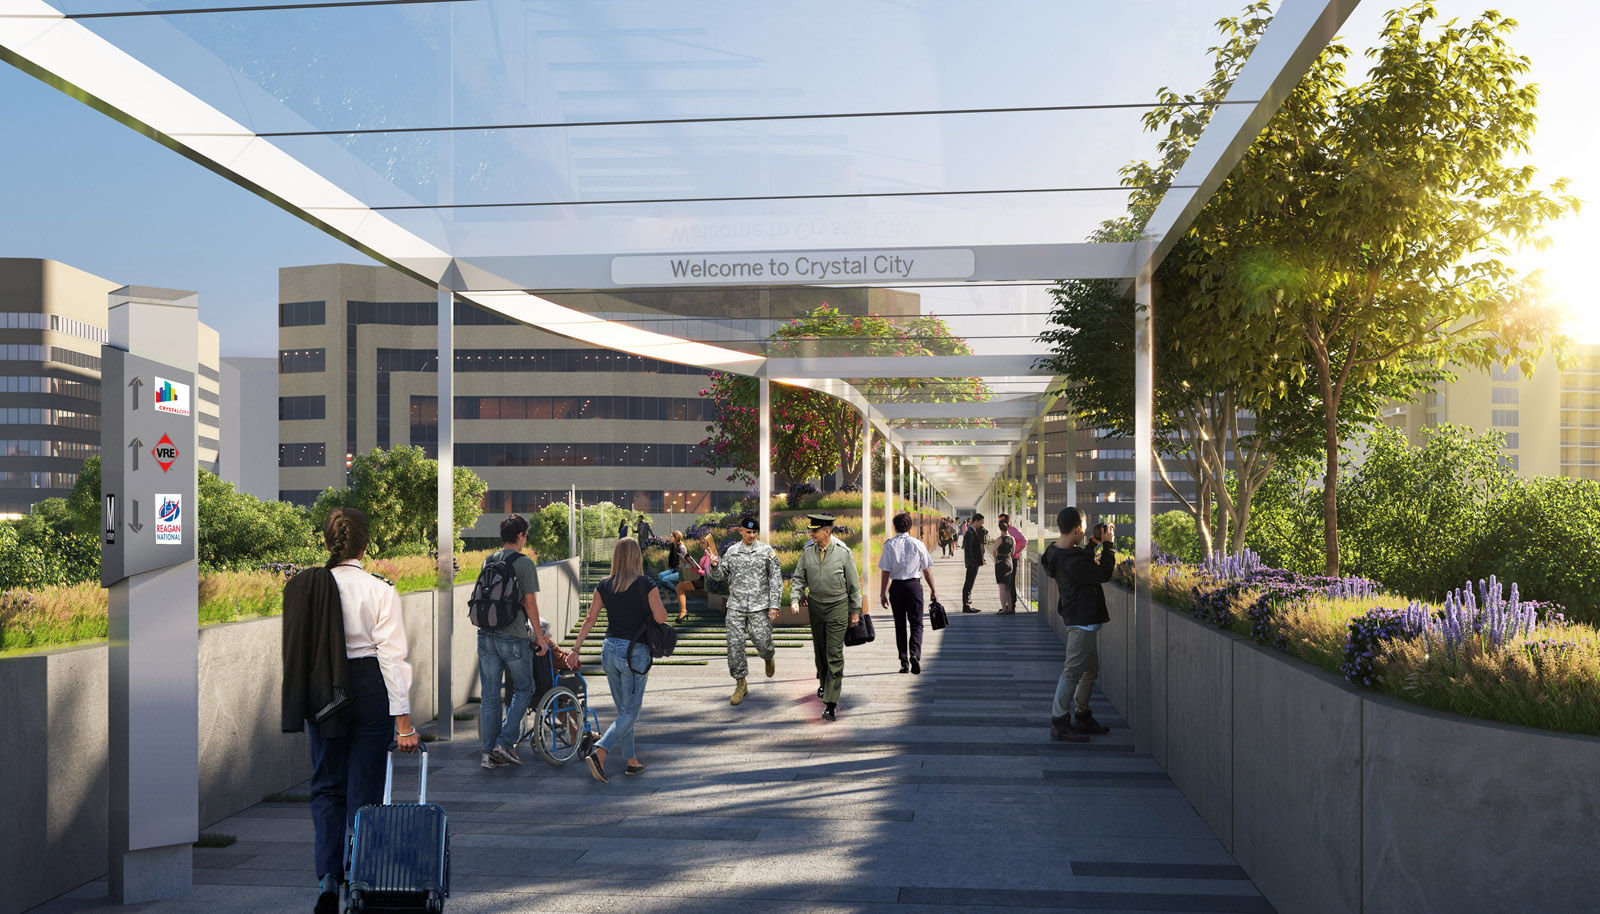 This artists rendering shows a proposed pedestrian bridge that would link Reagan National Airport to Crystal City. (Courtesy Crystal City Business Improvement District )